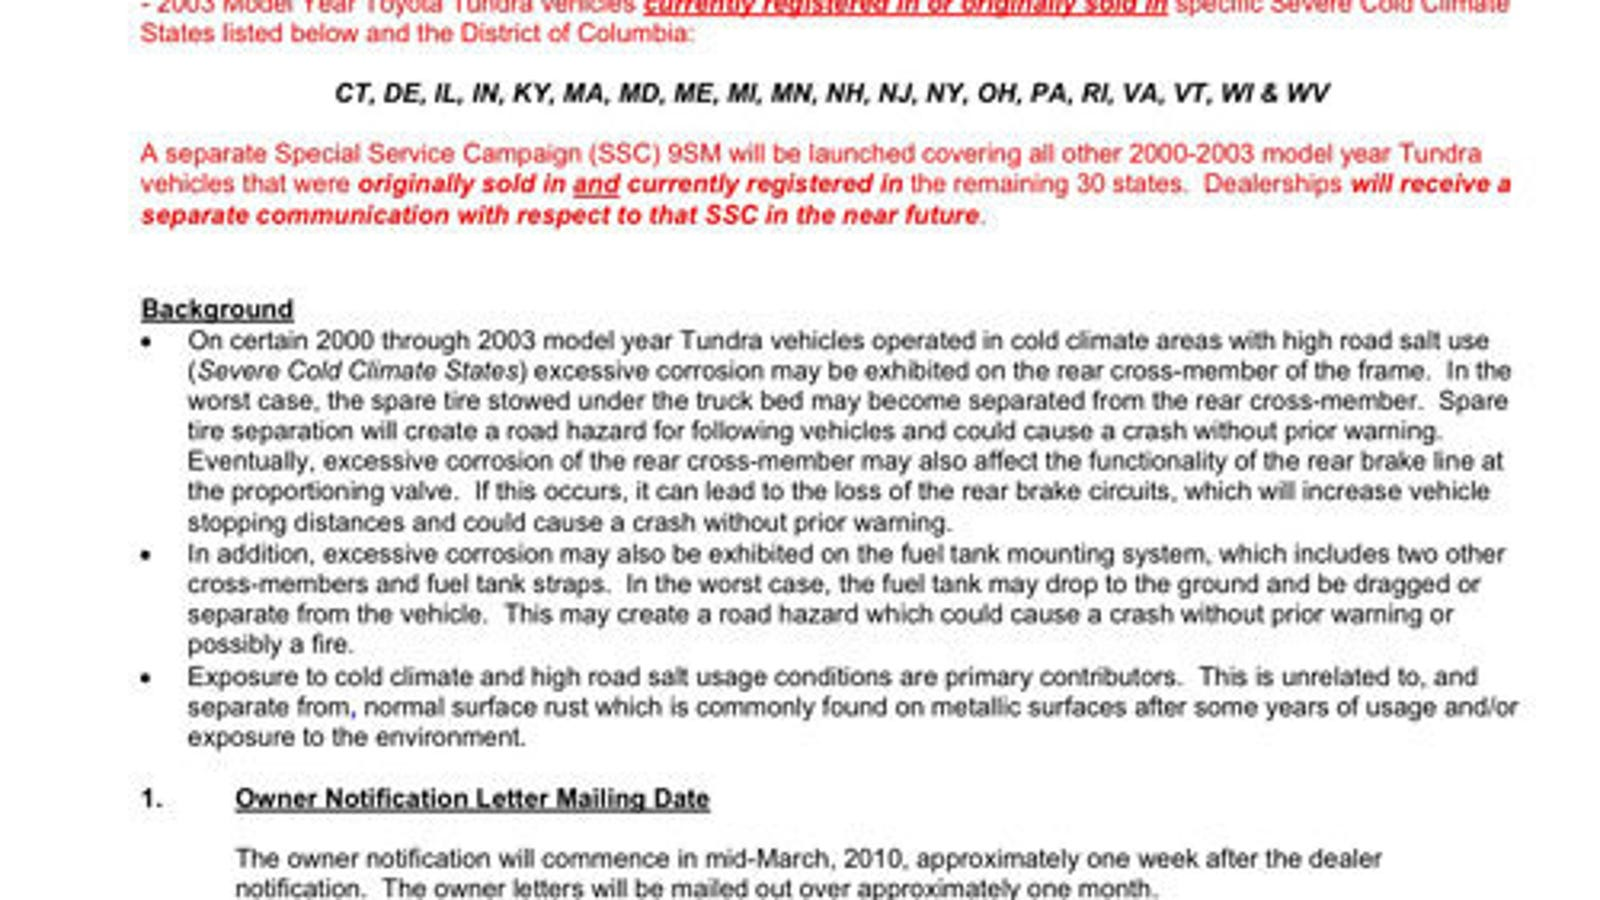 The Tundra Frame Rust Recall Service Bulletin You\'ll Soon Be Seeing ...